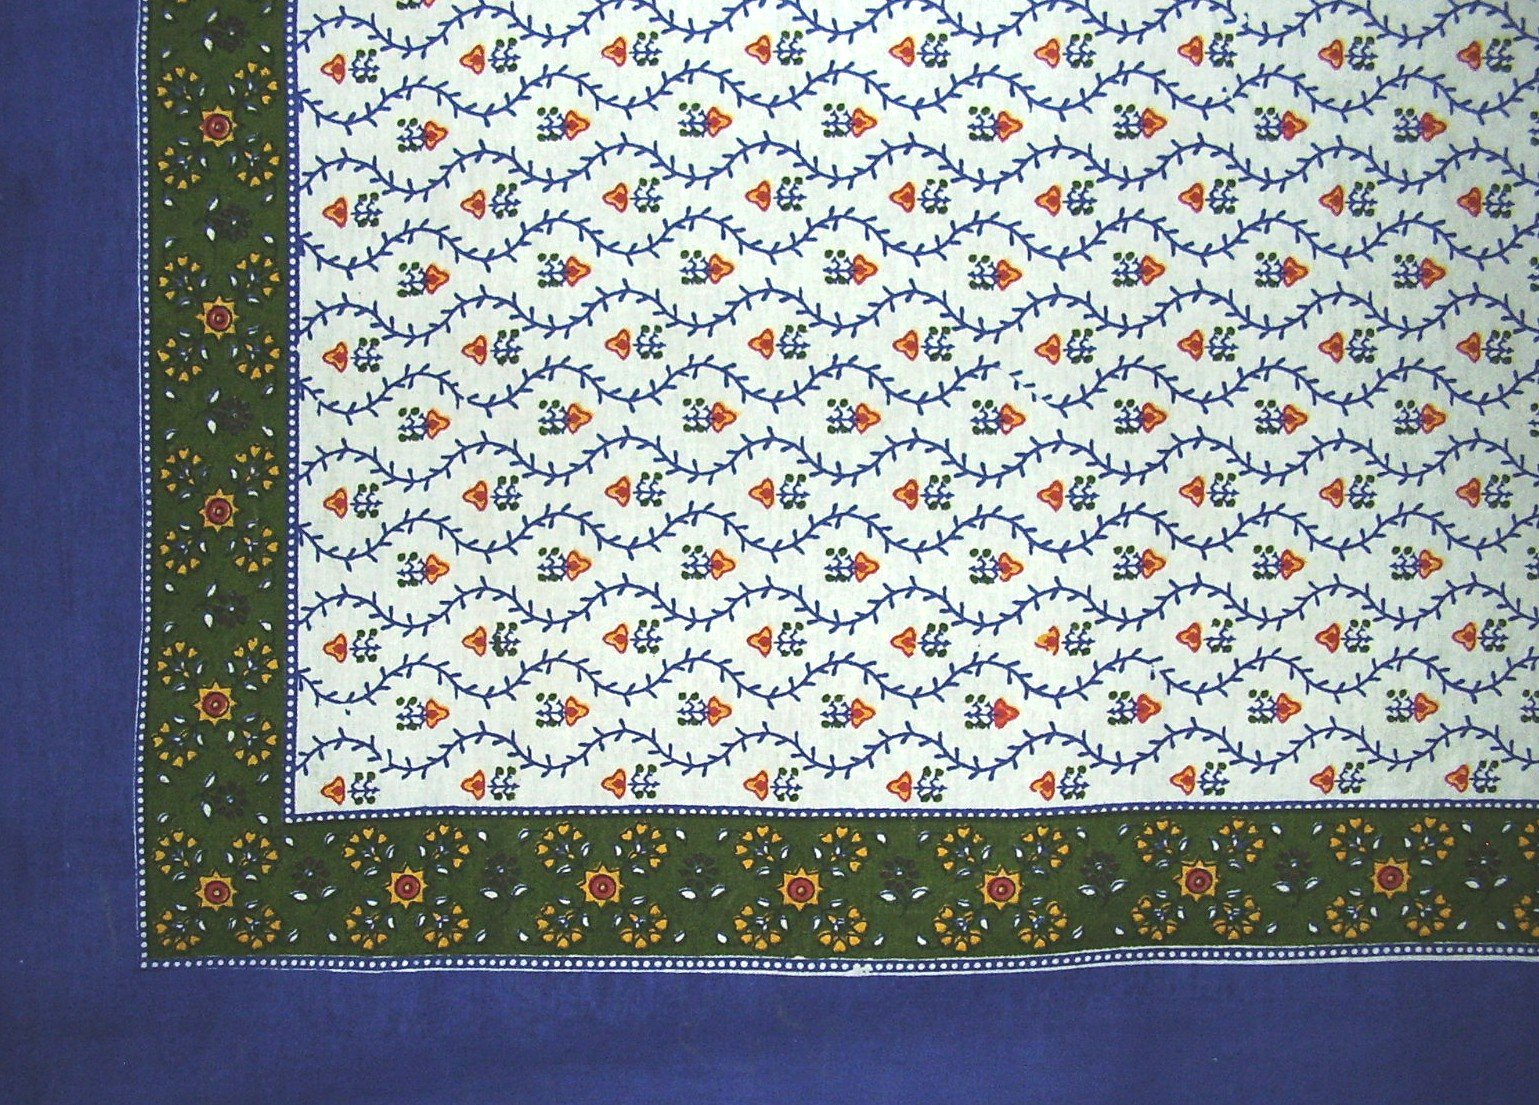 India Arts Buti Print Square Cotton Tablecloth 70'' x 70'' Blue